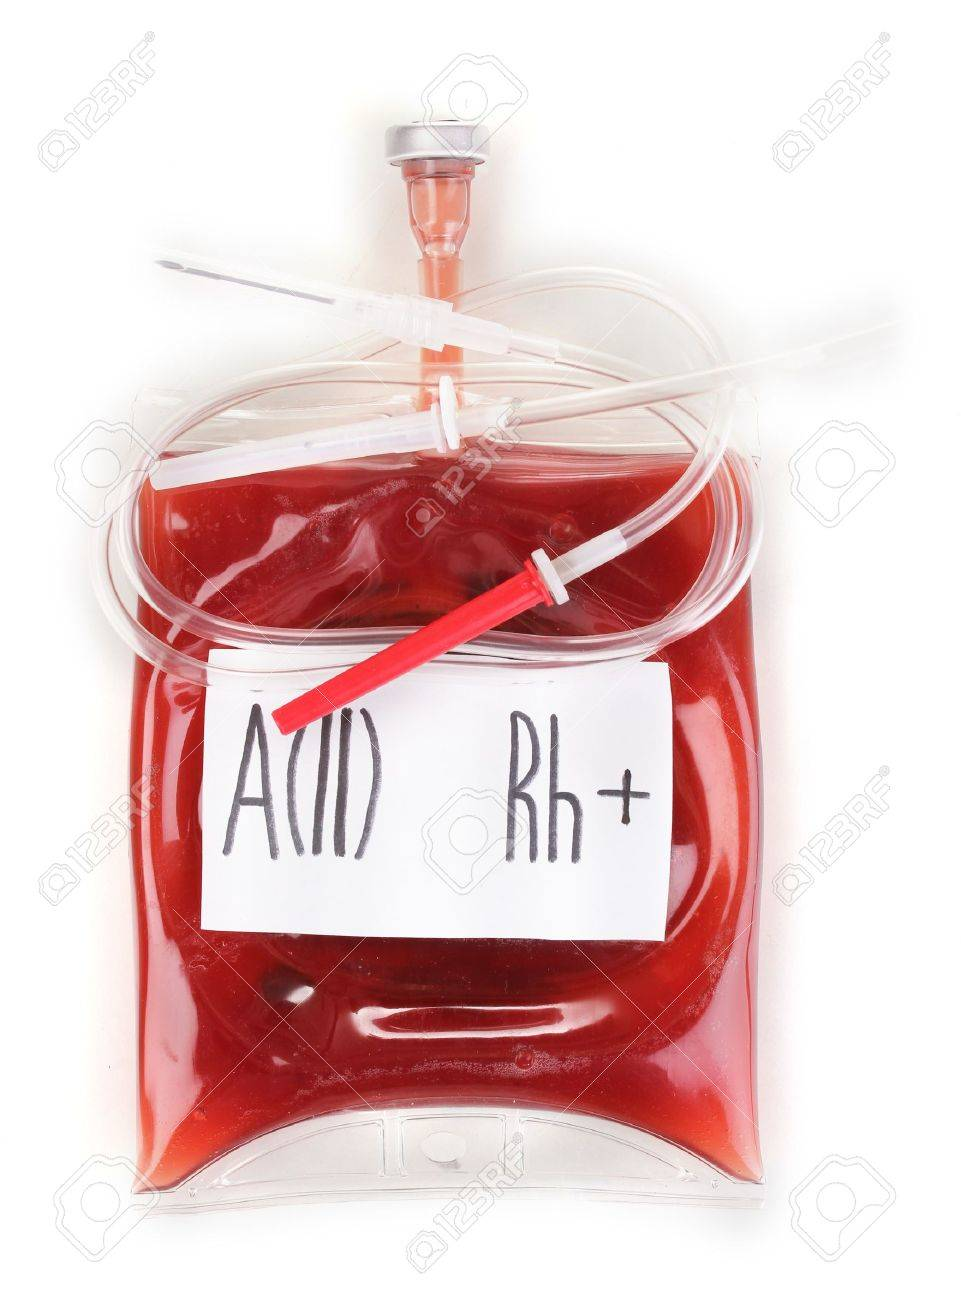 Bag of blood and infusion isolated on white Stock Photo - 14759351